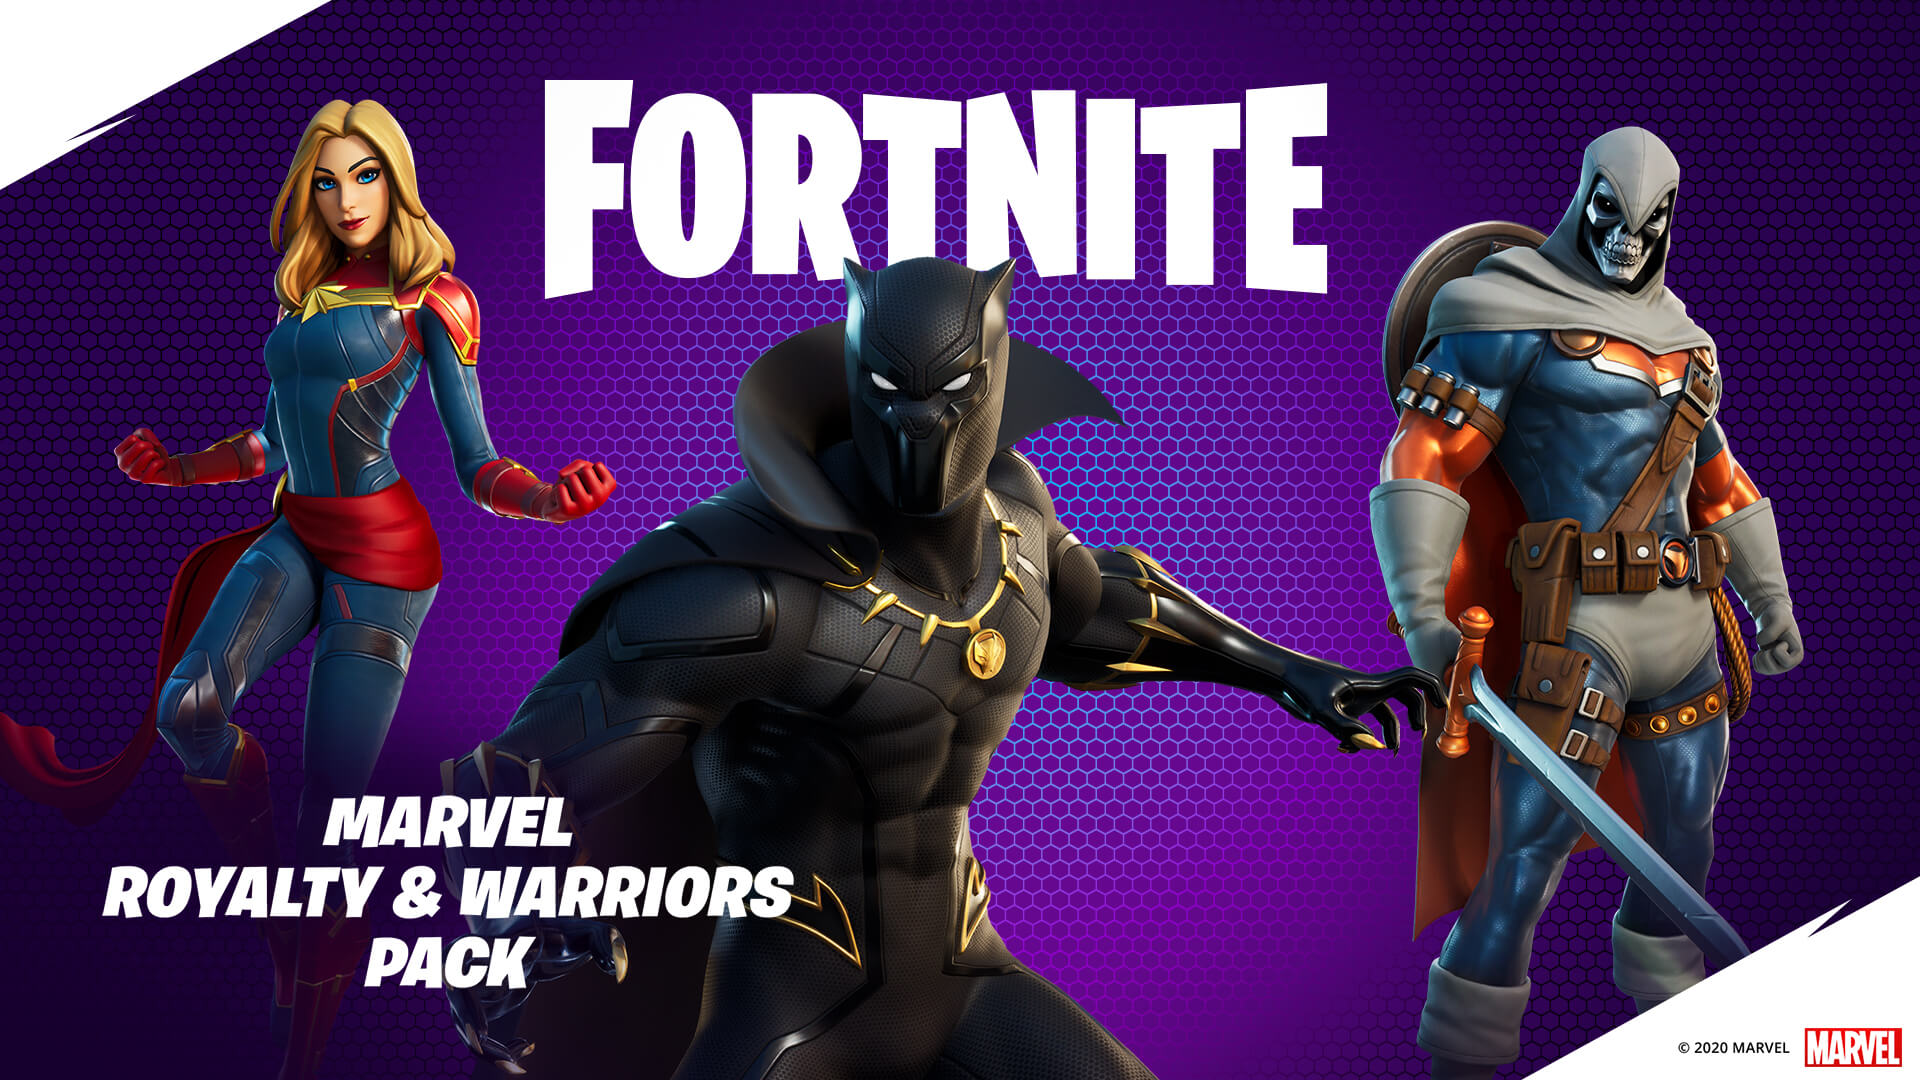 Fortnite Marvel Royalty And Heroes Pack